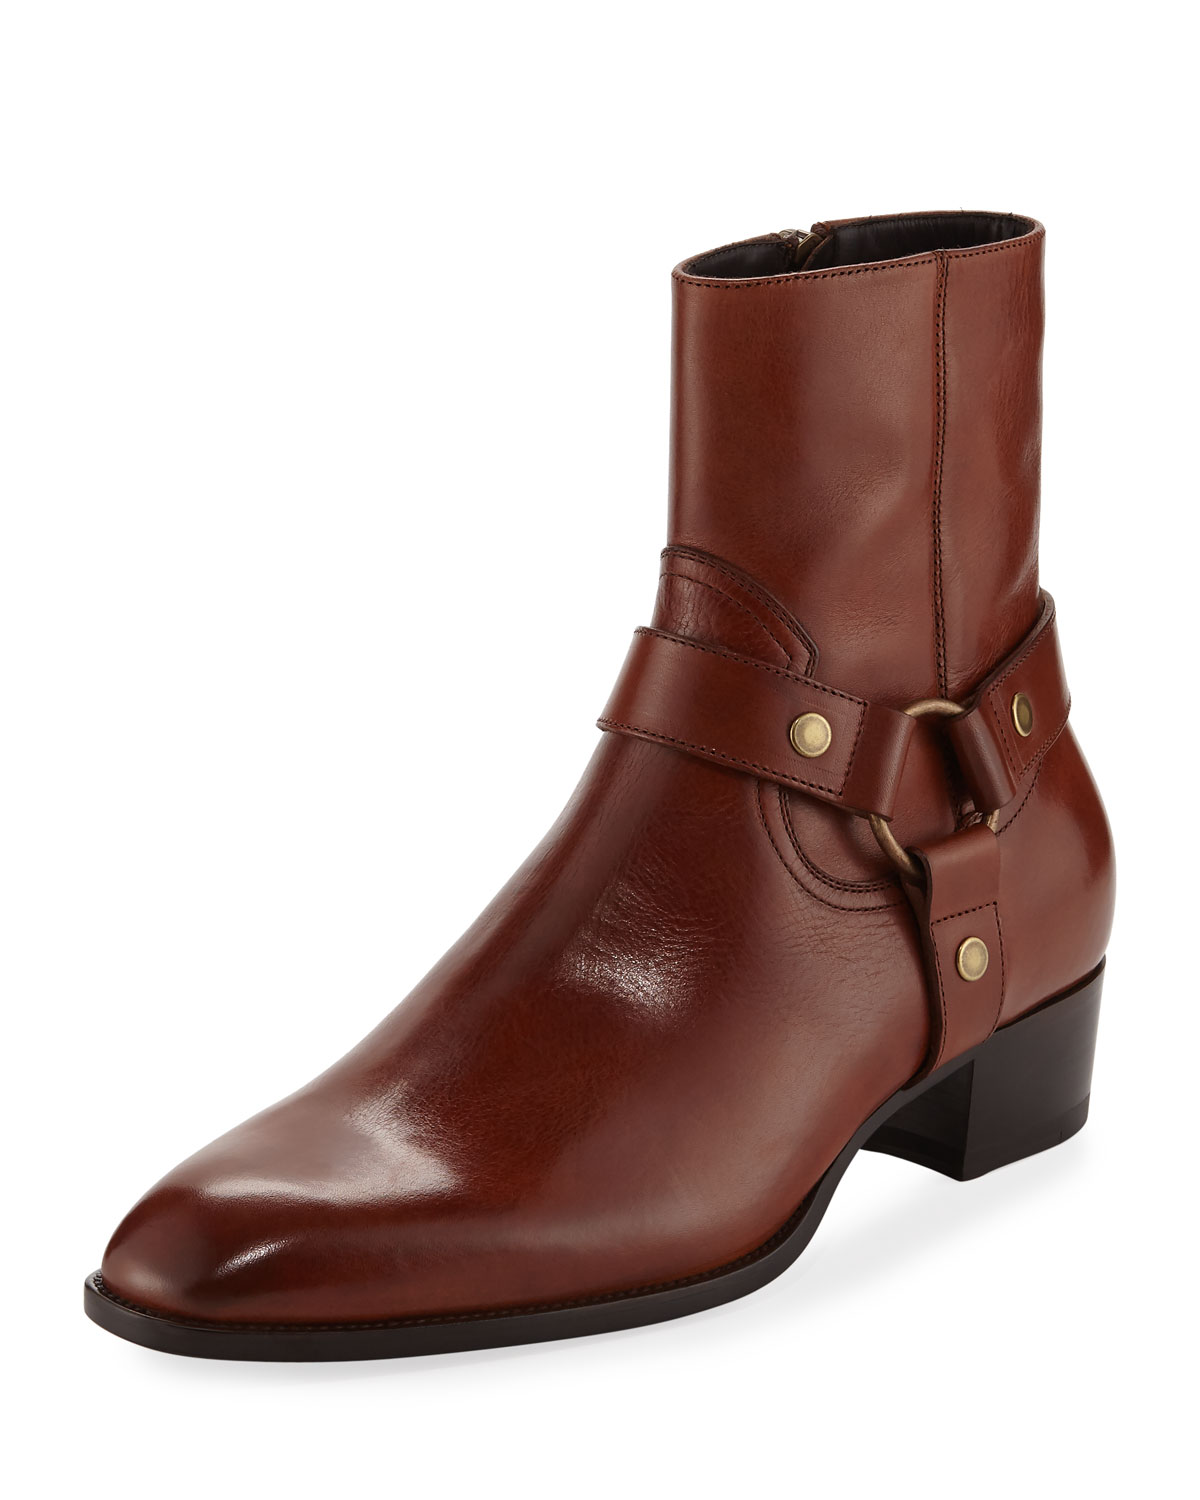 67bad29e670 Saint Laurent Wyatt Leather Harness Boot | Neiman Marcus